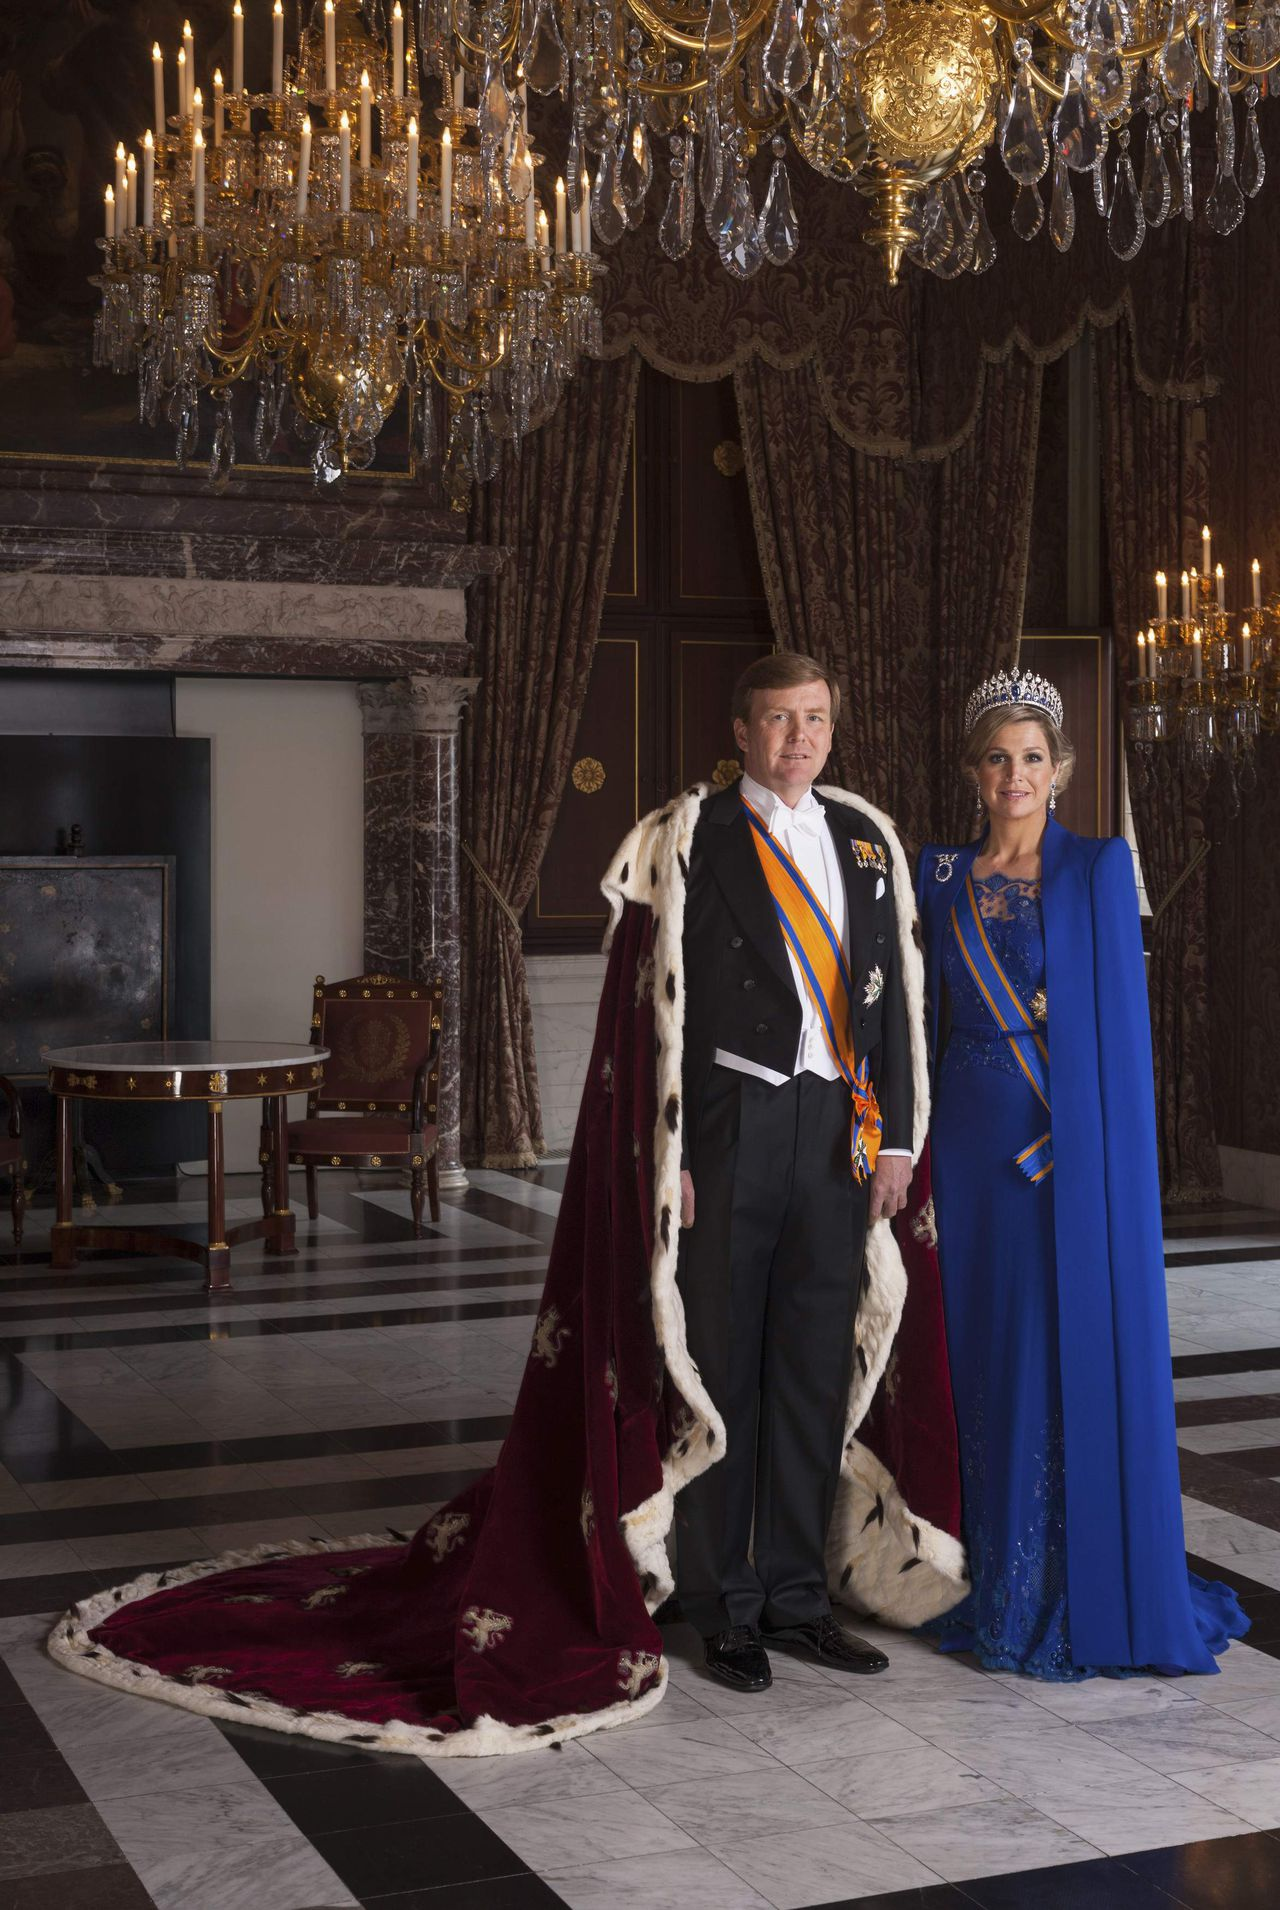 King Willem-Alexander (L) of the Netherlands and Queen Maxima are seen in this official portrait in Amsterdam in this handout picture provided by RVD Koos Breukel May 6, 2013. Queen Beatrix of the Netherlands abdicated on April 30, handing over to her eldest son, Willem-Alexander, who became the first King of the Netherlands in over 120 years. RVD Koos Breukel/Handout via Reuters (NETHERLANDS - Tags: POLITICS ENTERTAINMENT ROYALS) ATTENTION EDITORS - NO SALES. NO ARCHIVES. FOR EDITORIAL USE ONLY. NOT FOR SALE FOR MARKETING OR ADVERTISING CAMPAIGNS. THIS IMAGE HAS BEEN SUPPLIED BY A THIRD PARTY. IT IS DISTRIBUTED, EXACTLY AS RECEIVED BY REUTERS, AS A SERVICE TO CLIENTS